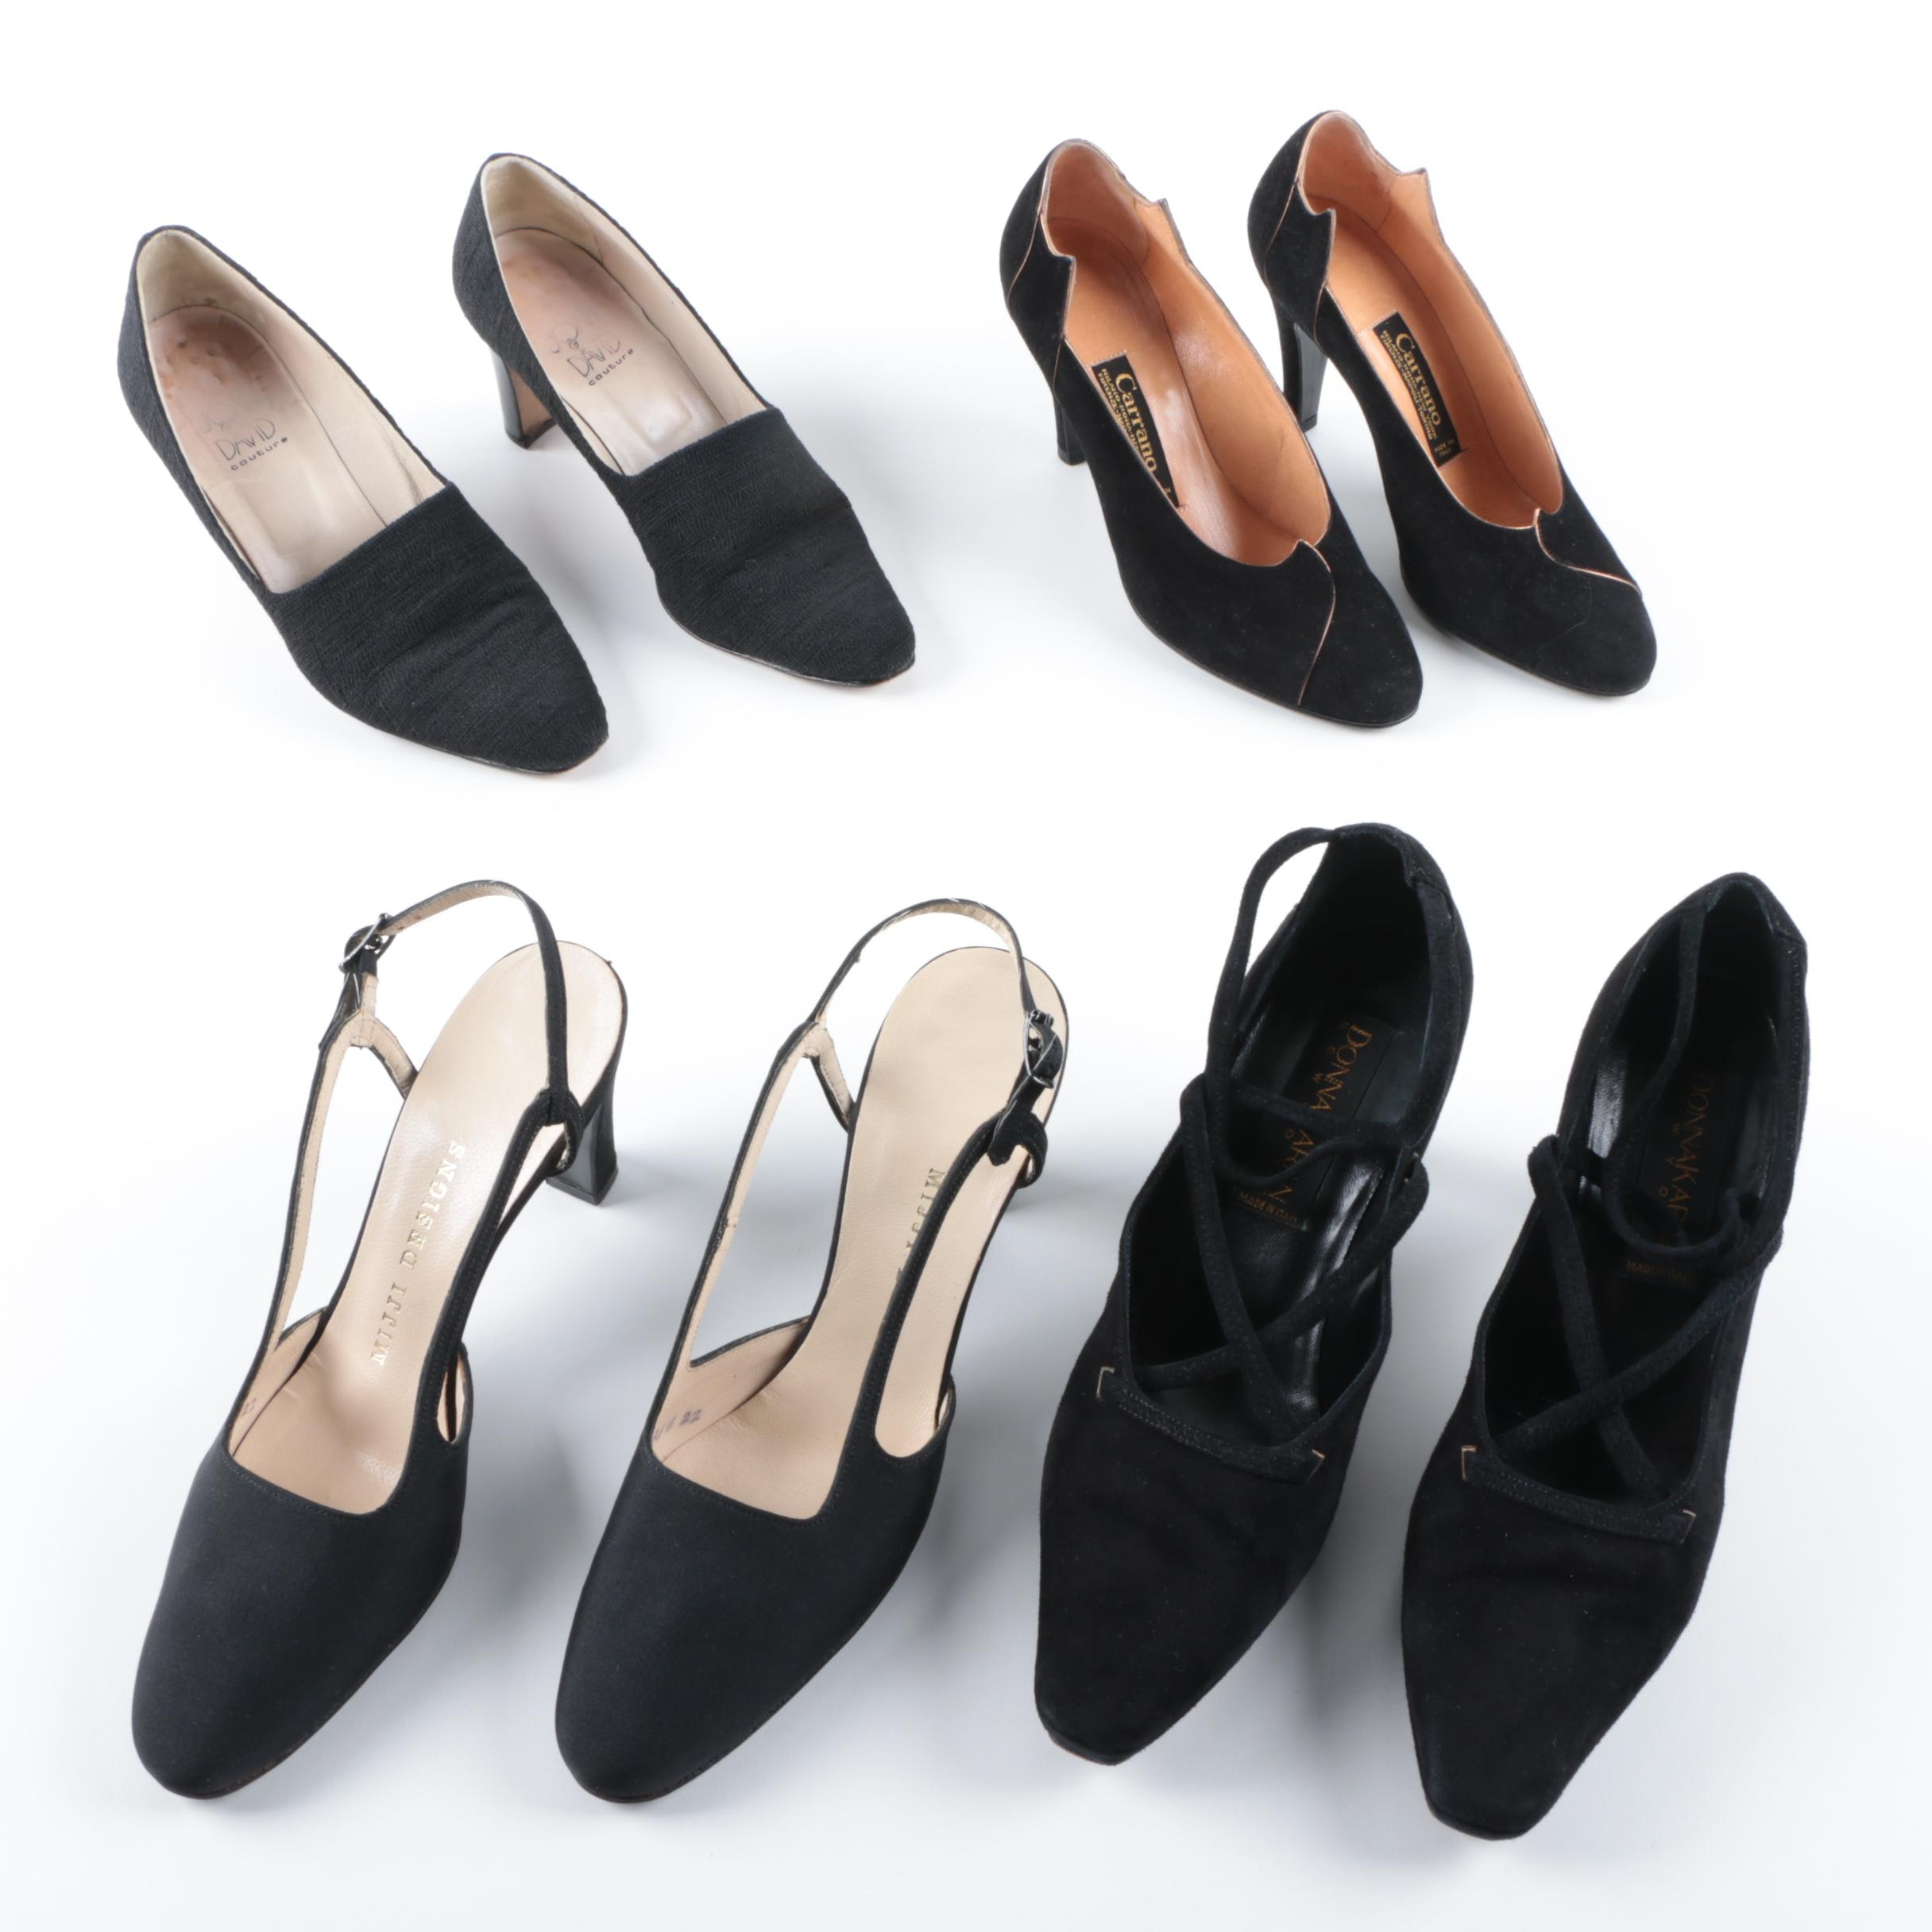 Women's Black Heels Including Joan & David Couture and Donna Karan